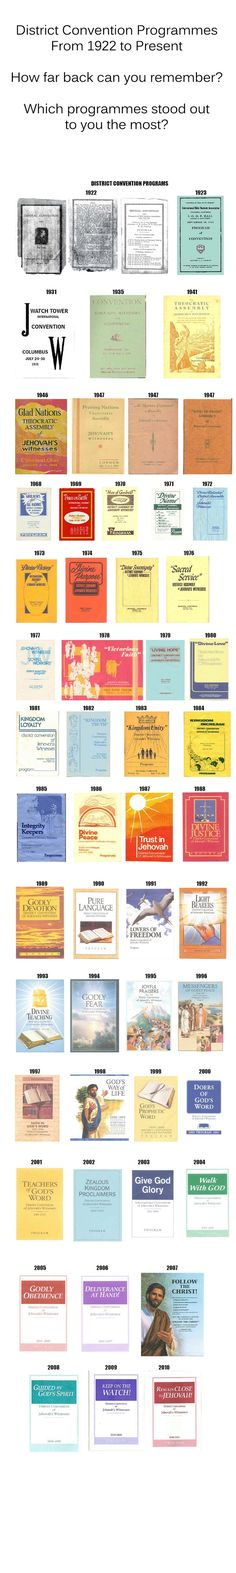 Convention programs 1922-2010. I was baptized on my birthdate 7/23/1993 @ the Divine Teaching District Convention in Houston, TX/ Astrodome.